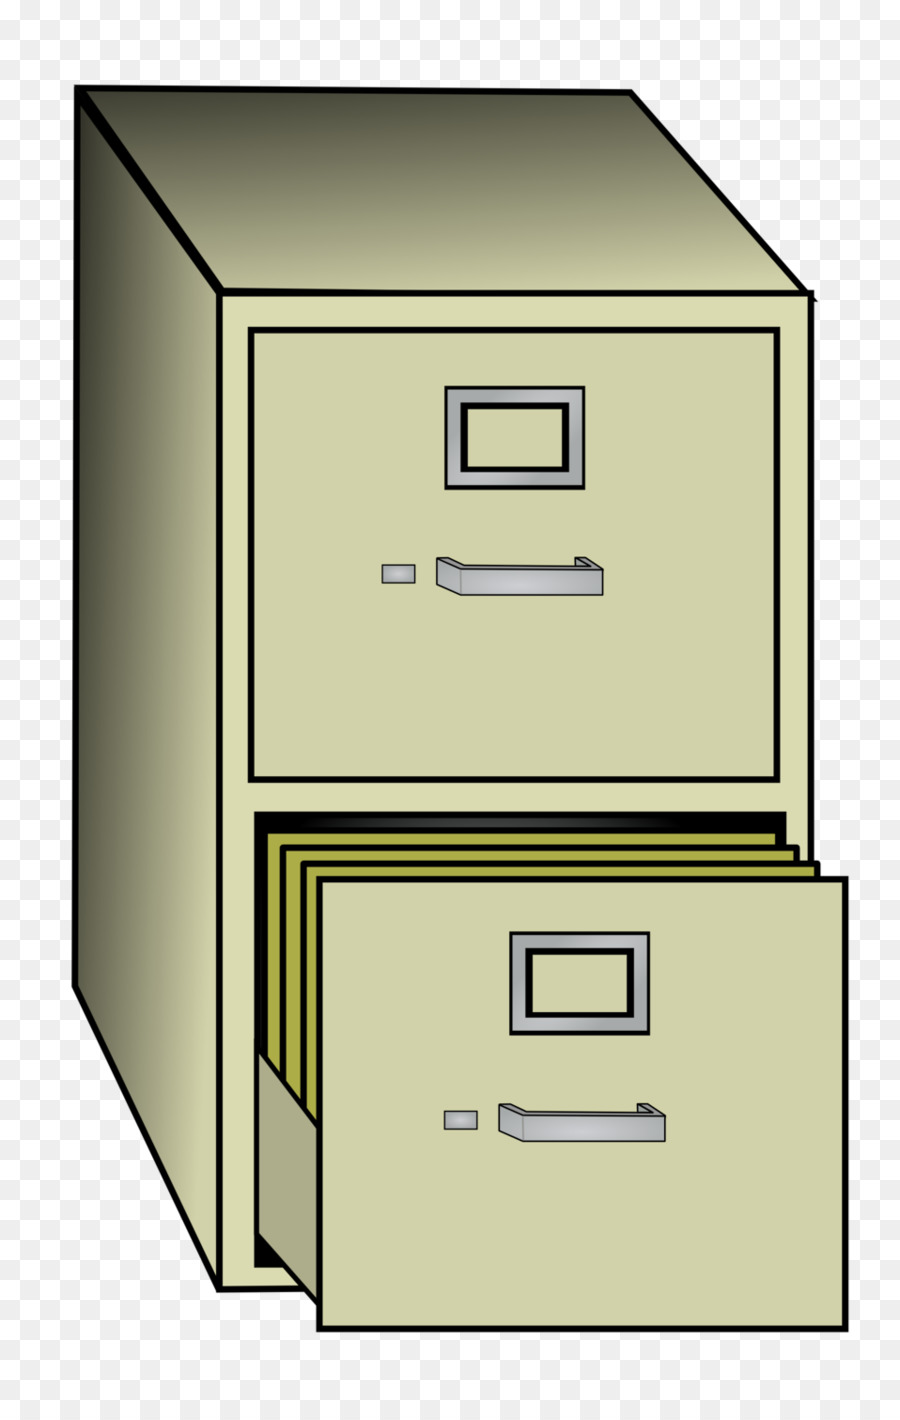 File Cabinets File Folders Cabinetry Computer Icons Clip art